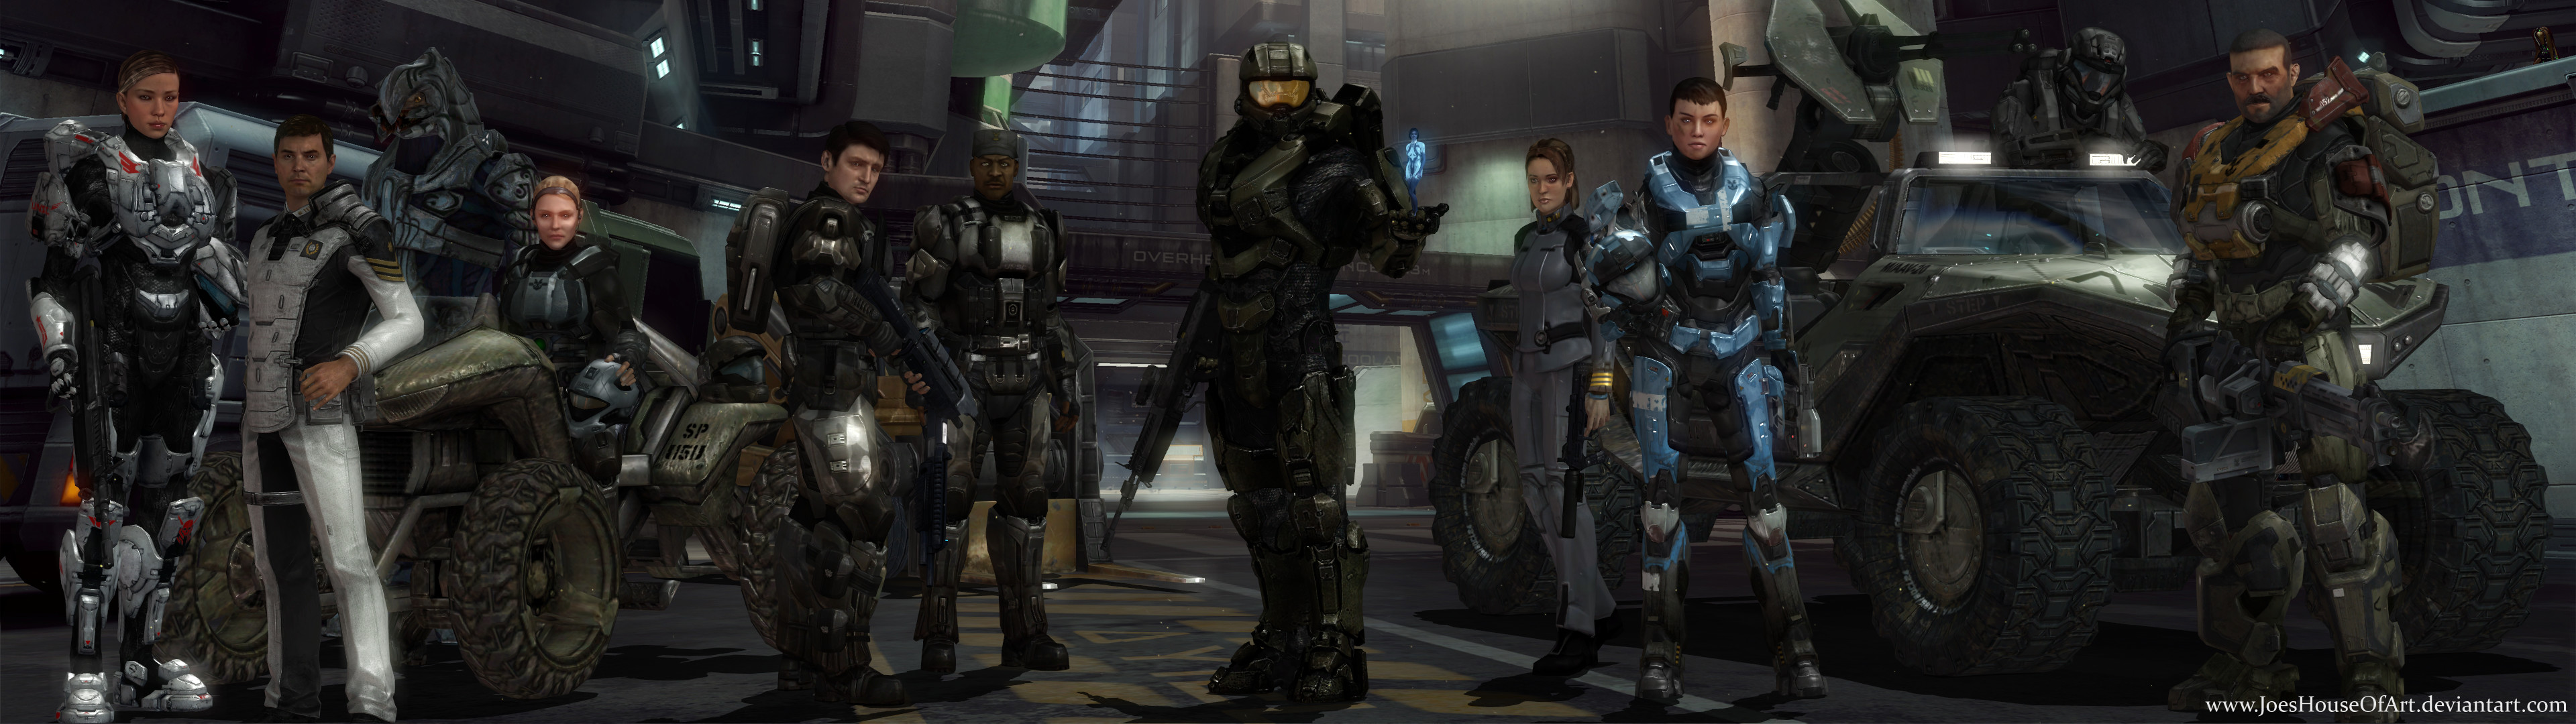 Legends Of Halo Dual Screen Wallpaper By ShaunsArtHouse